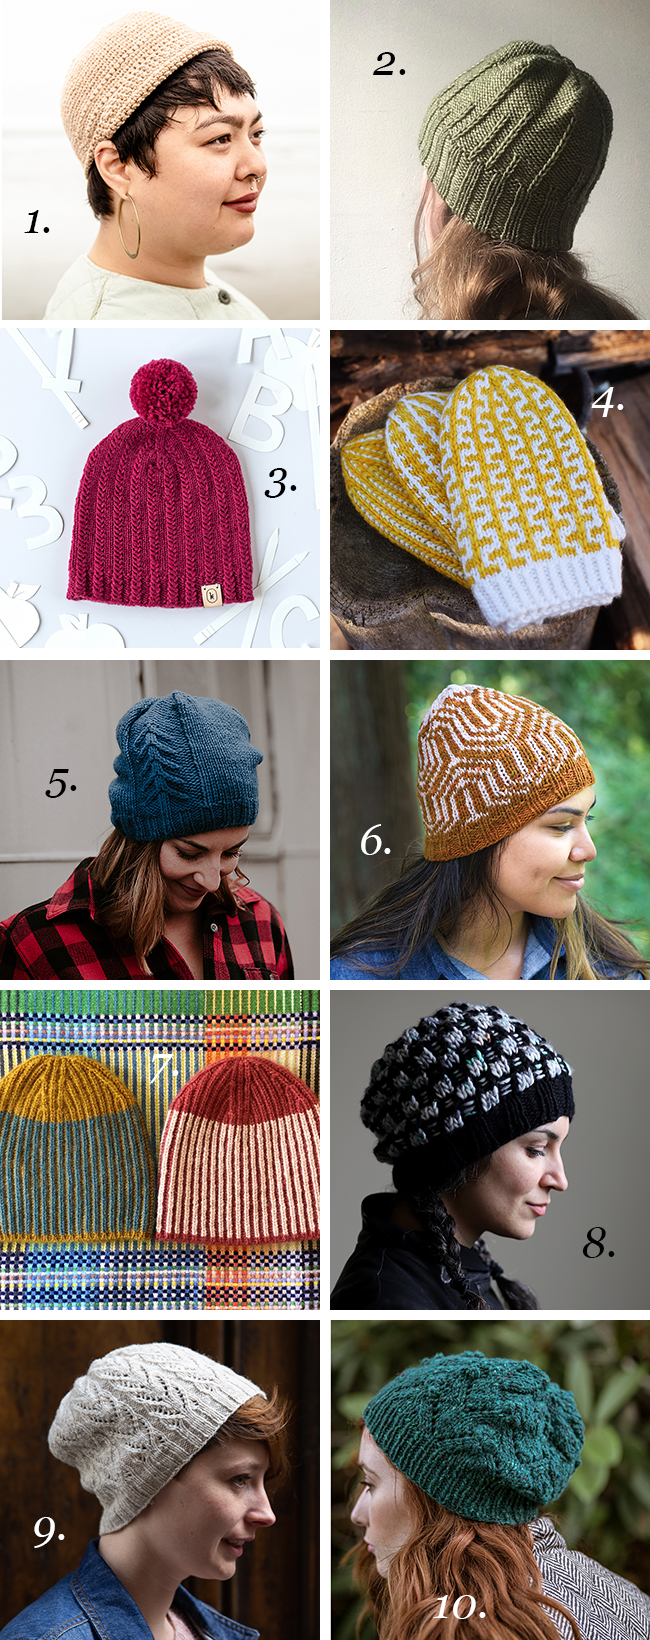 Holiday hat knitting cheat sheet: 10 skill-stretching patterns